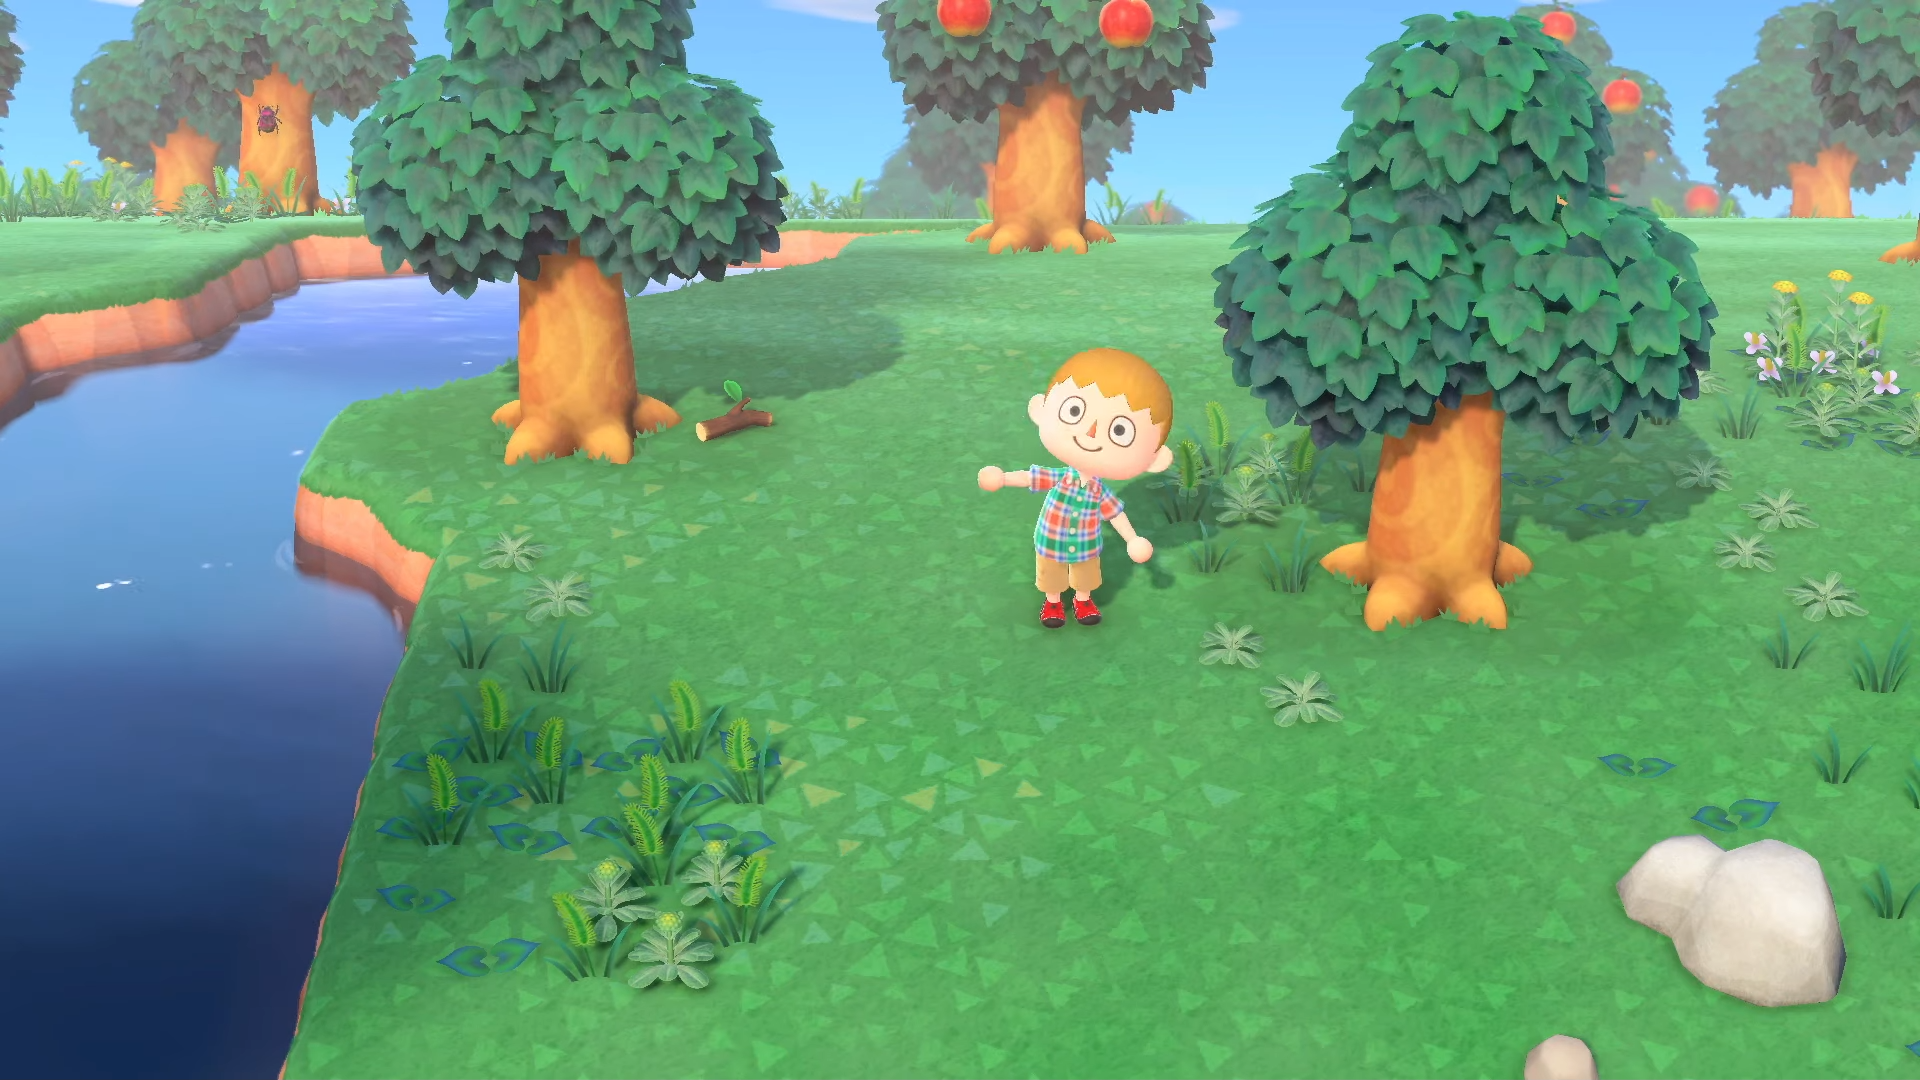 Insecte ressemblant au bousier, Animal Crossing: New Horizons